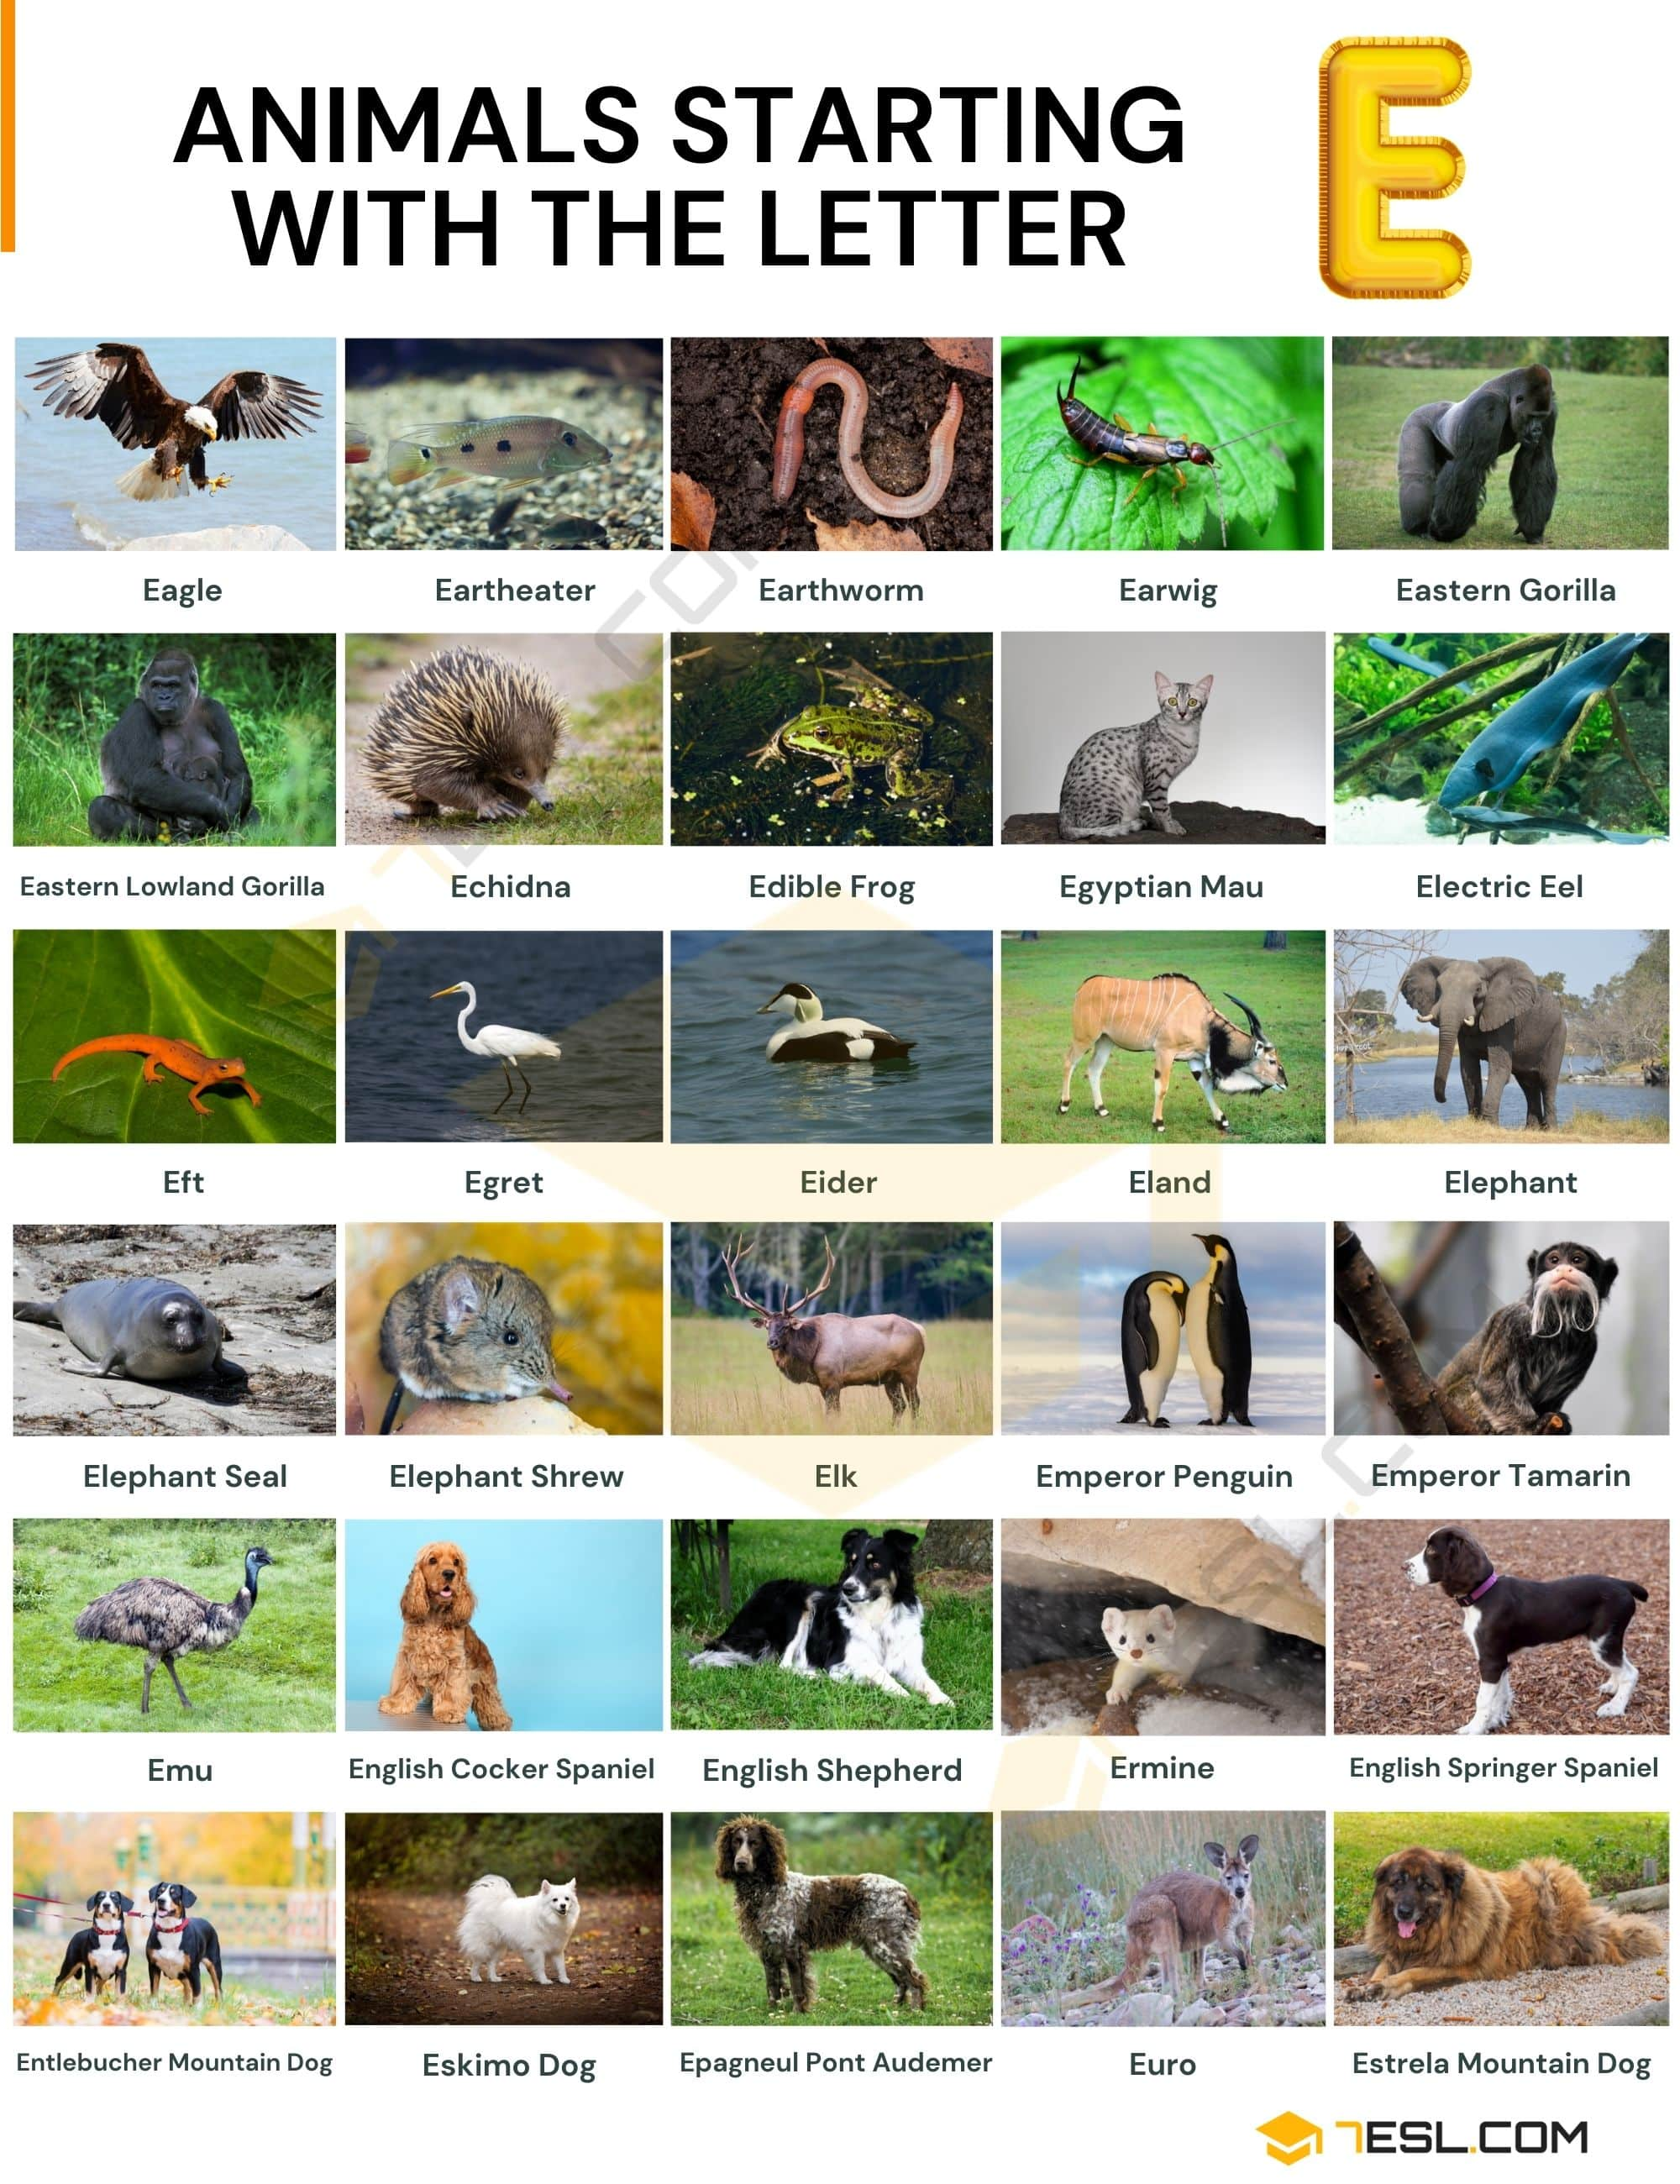 Animals that Start with E